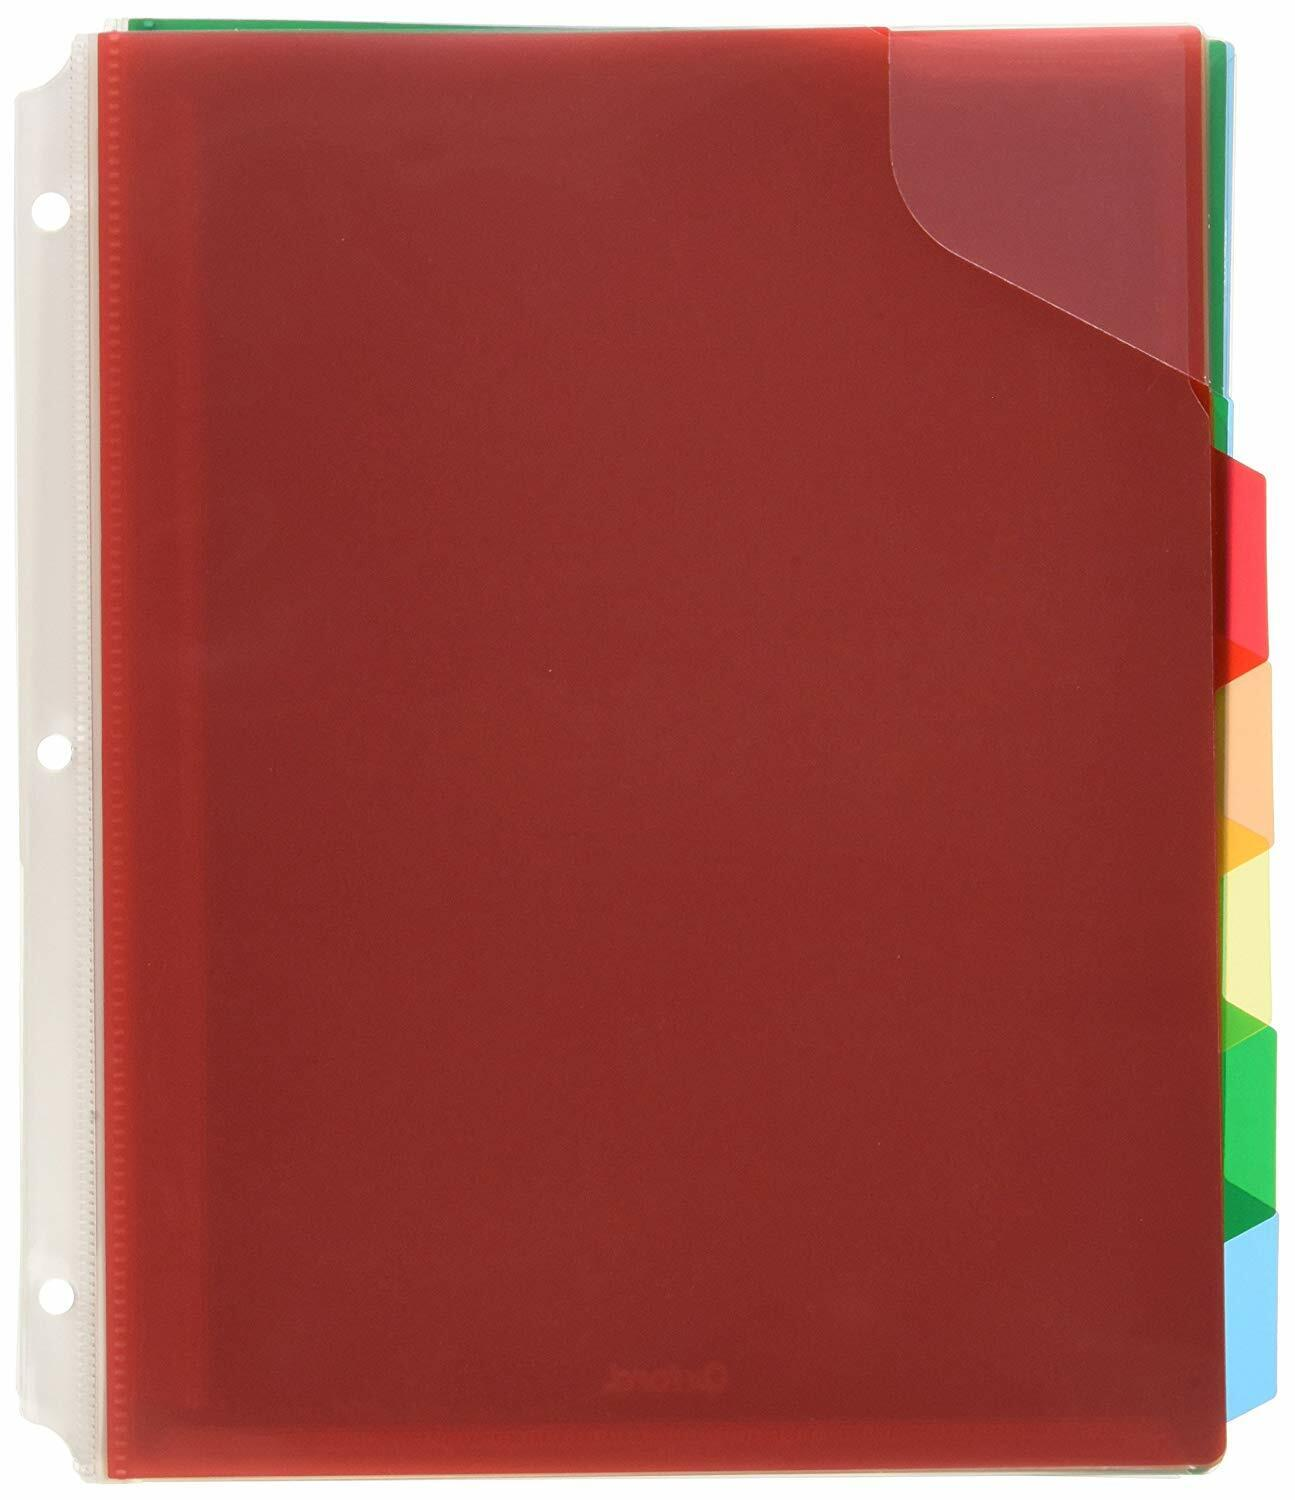 Esselte Oxford Full Pocket Plastic Tab Dividers, 5 Tab, Lett